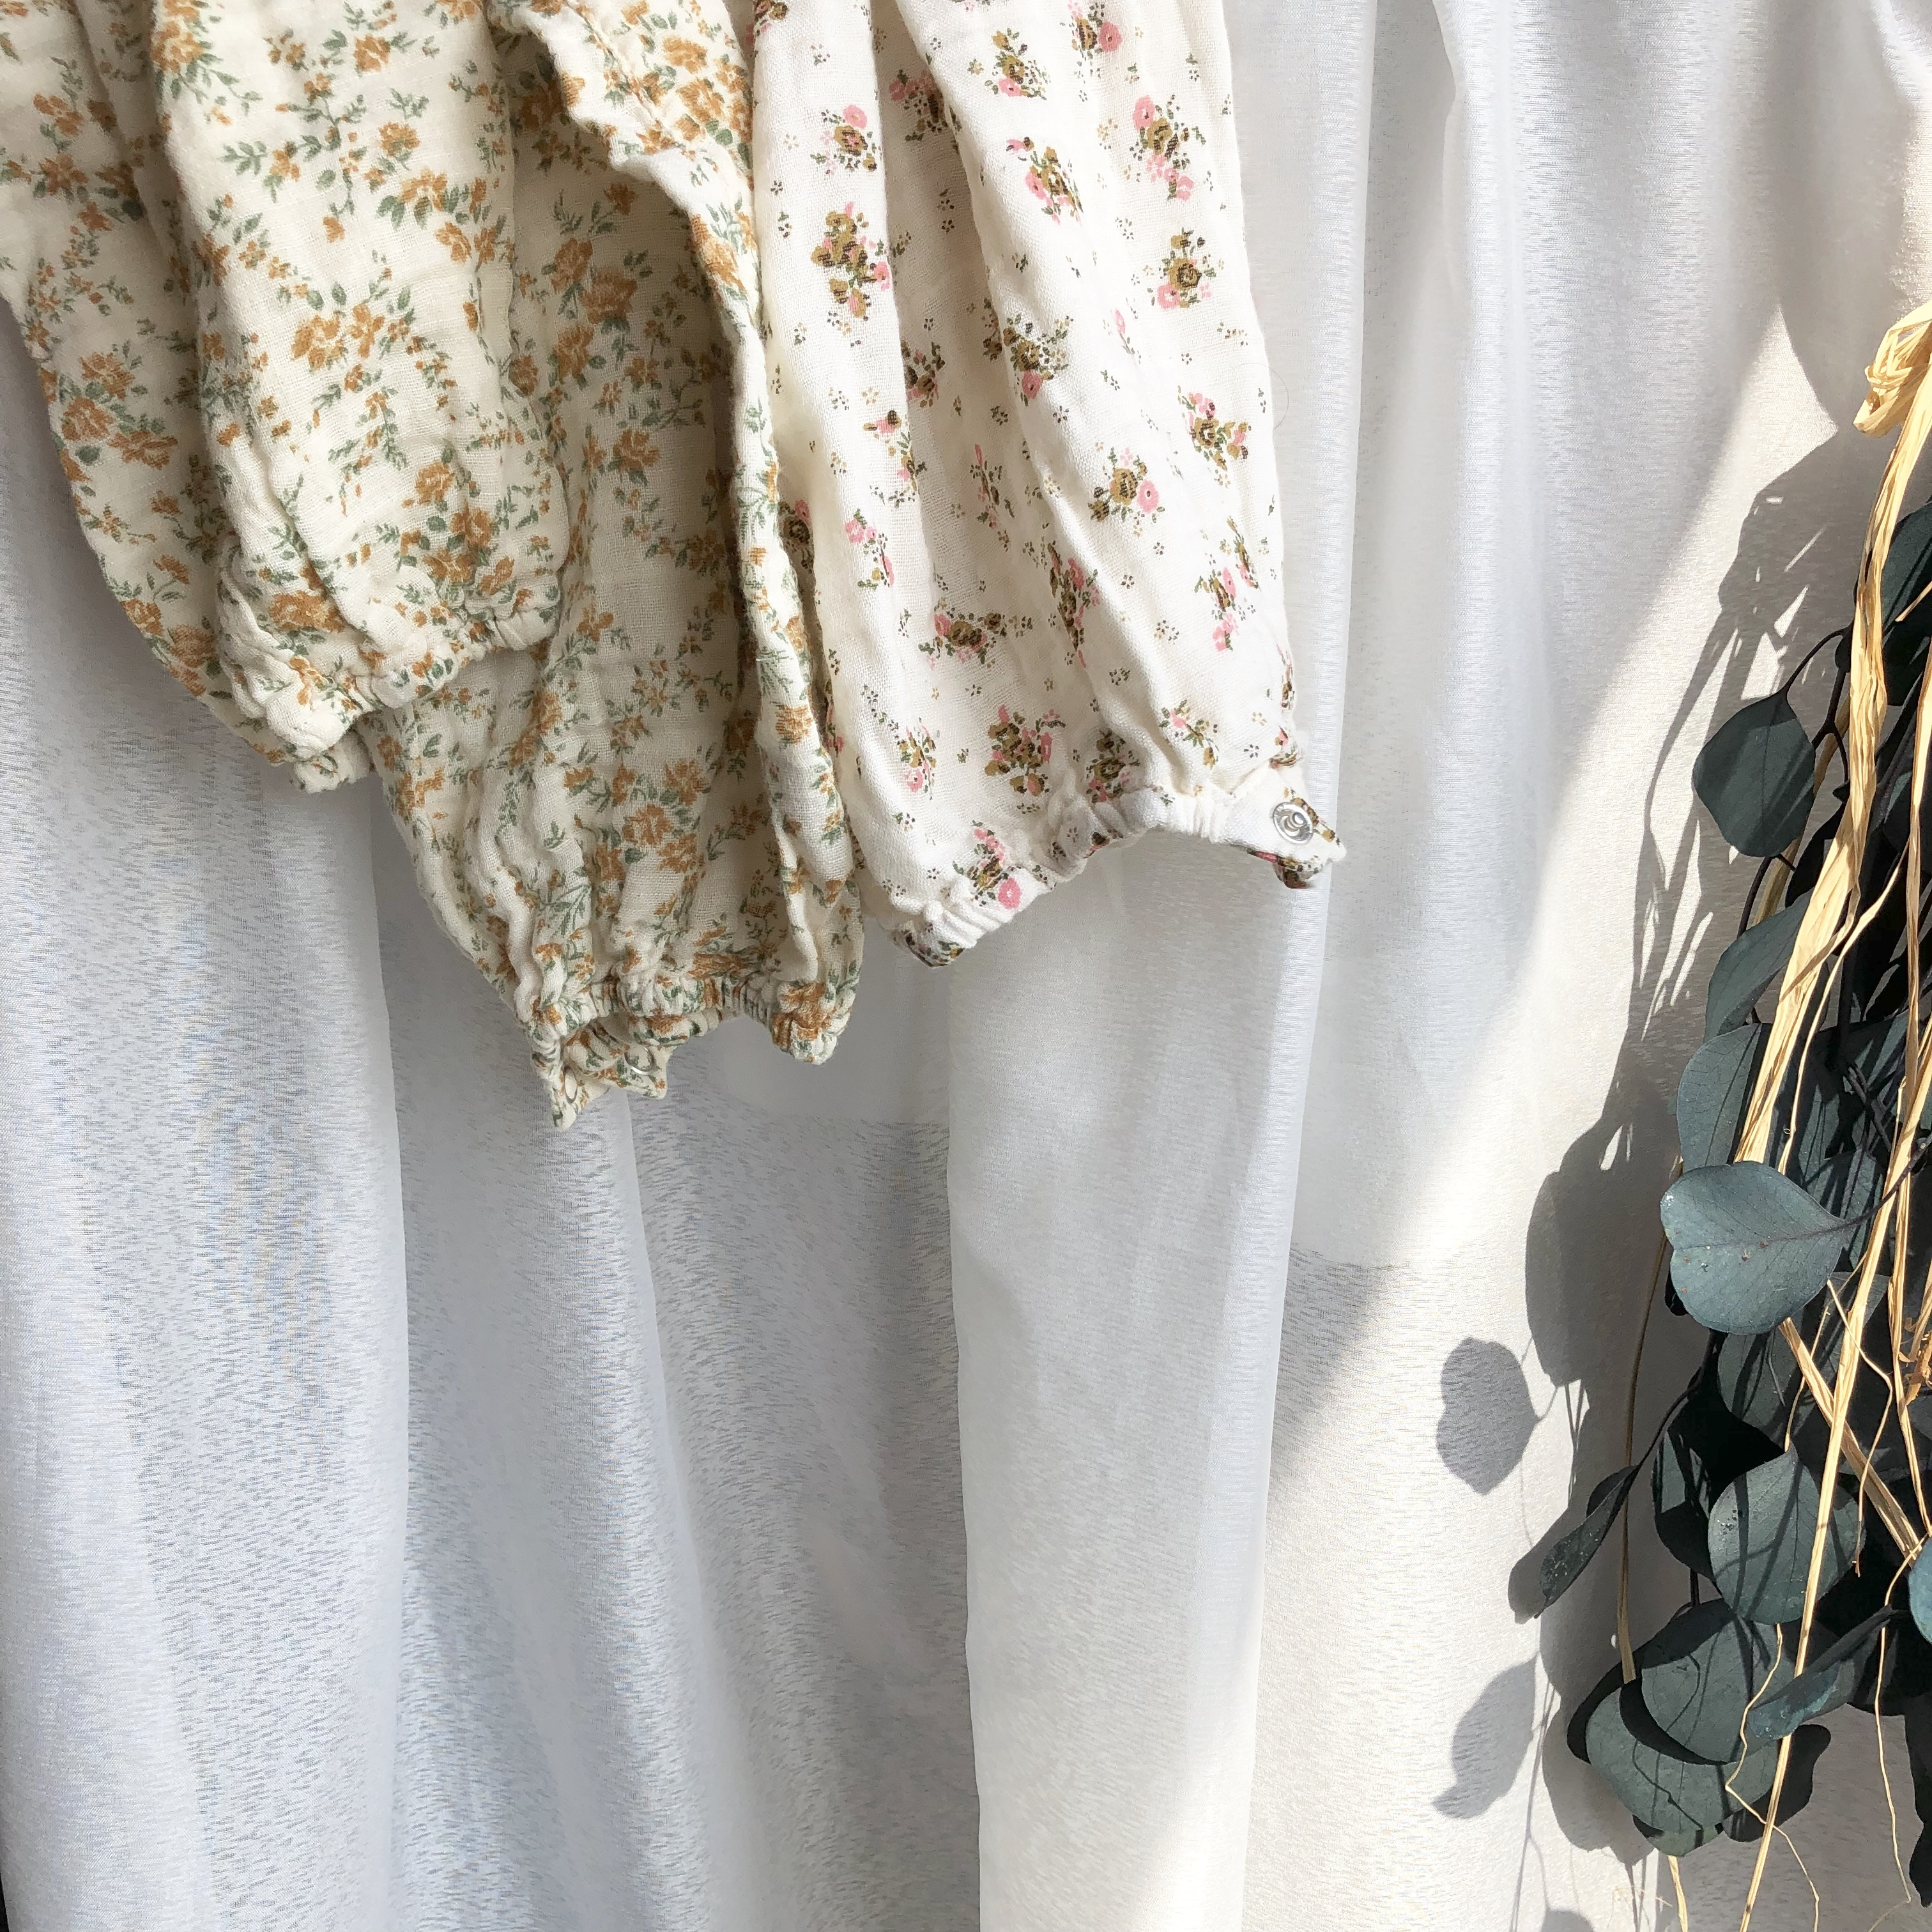 《 124 》Floral rompers